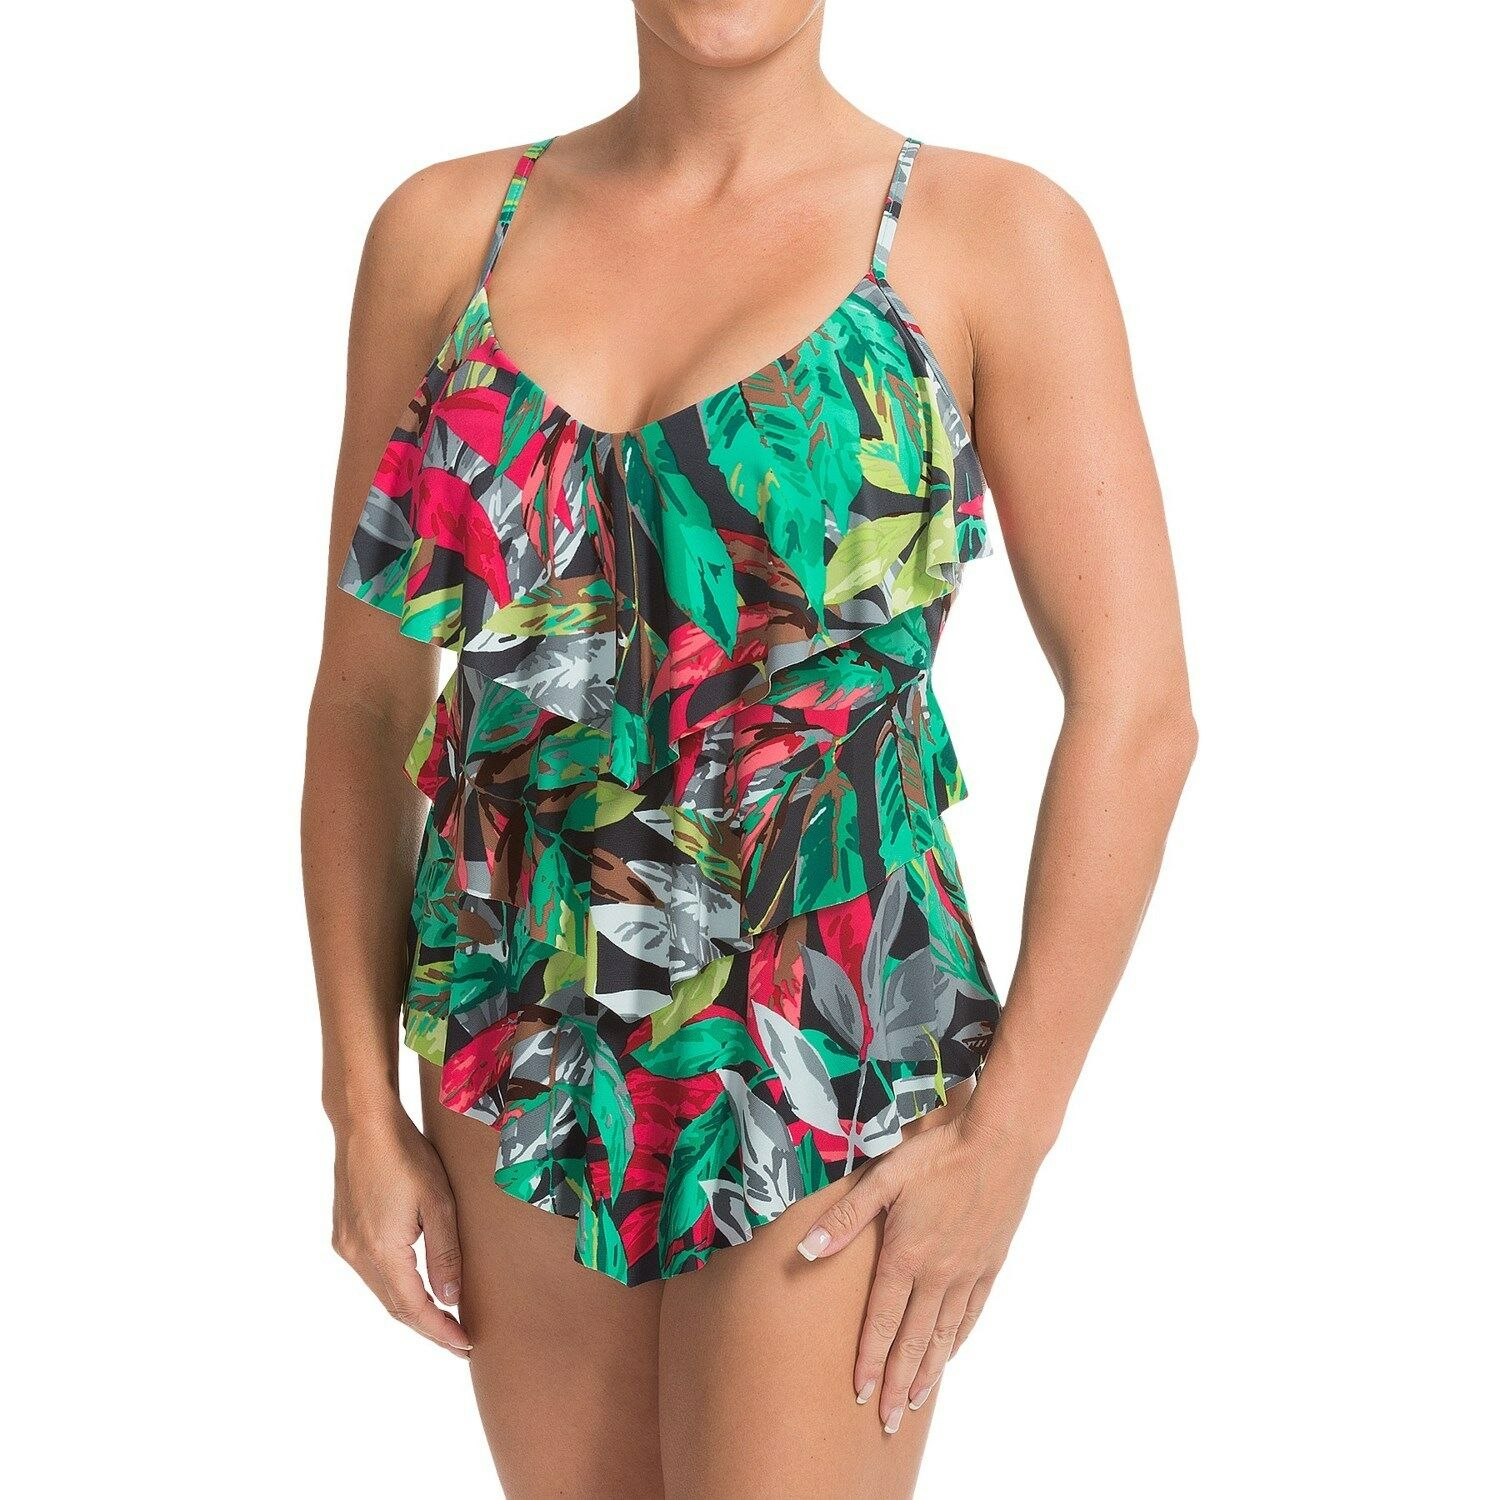 New Magicsuit Miraclesuit Tankini Rita 10 40 Tiered Ruffled 2 PC Slimming Green